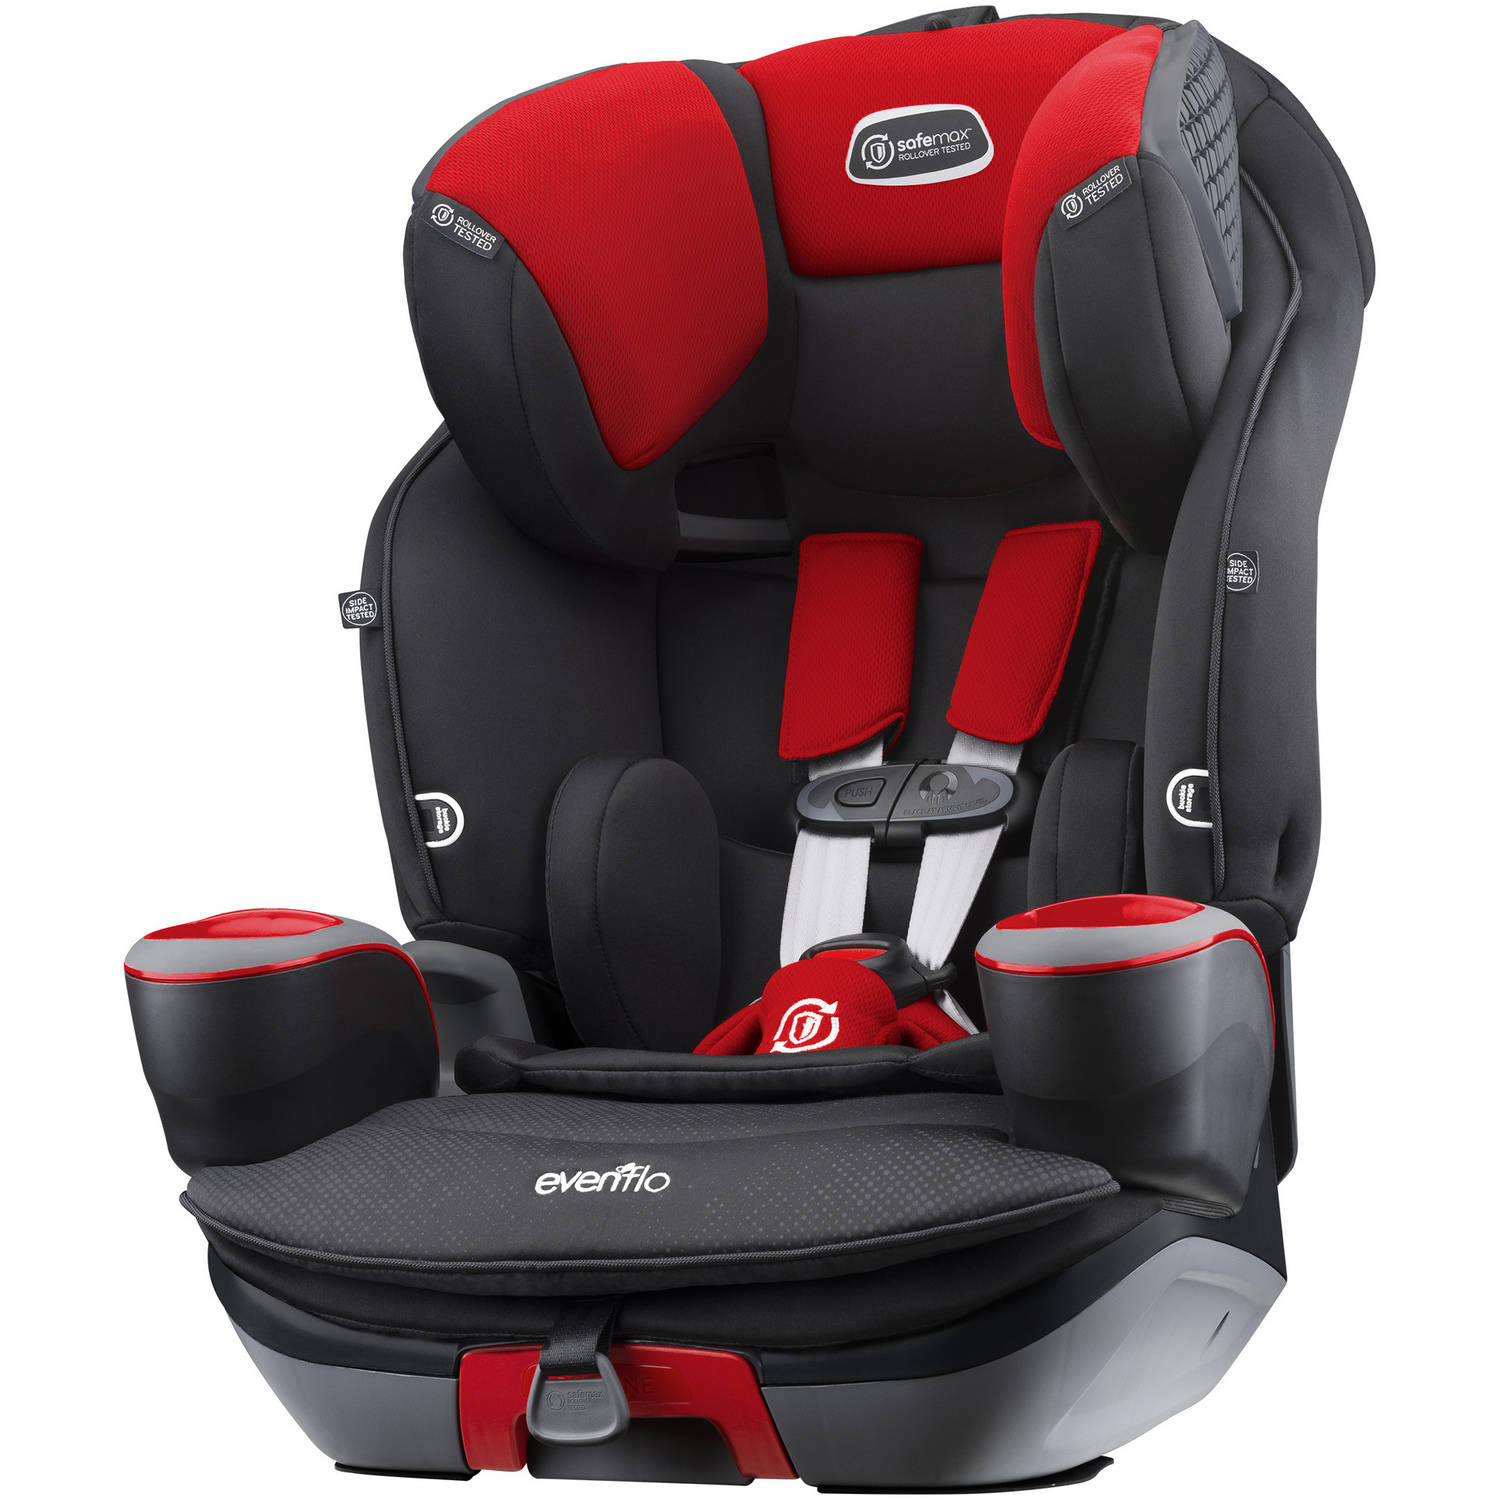 Evenflo SafeMax 3-in-1 Harness Booster Car Seat, Red